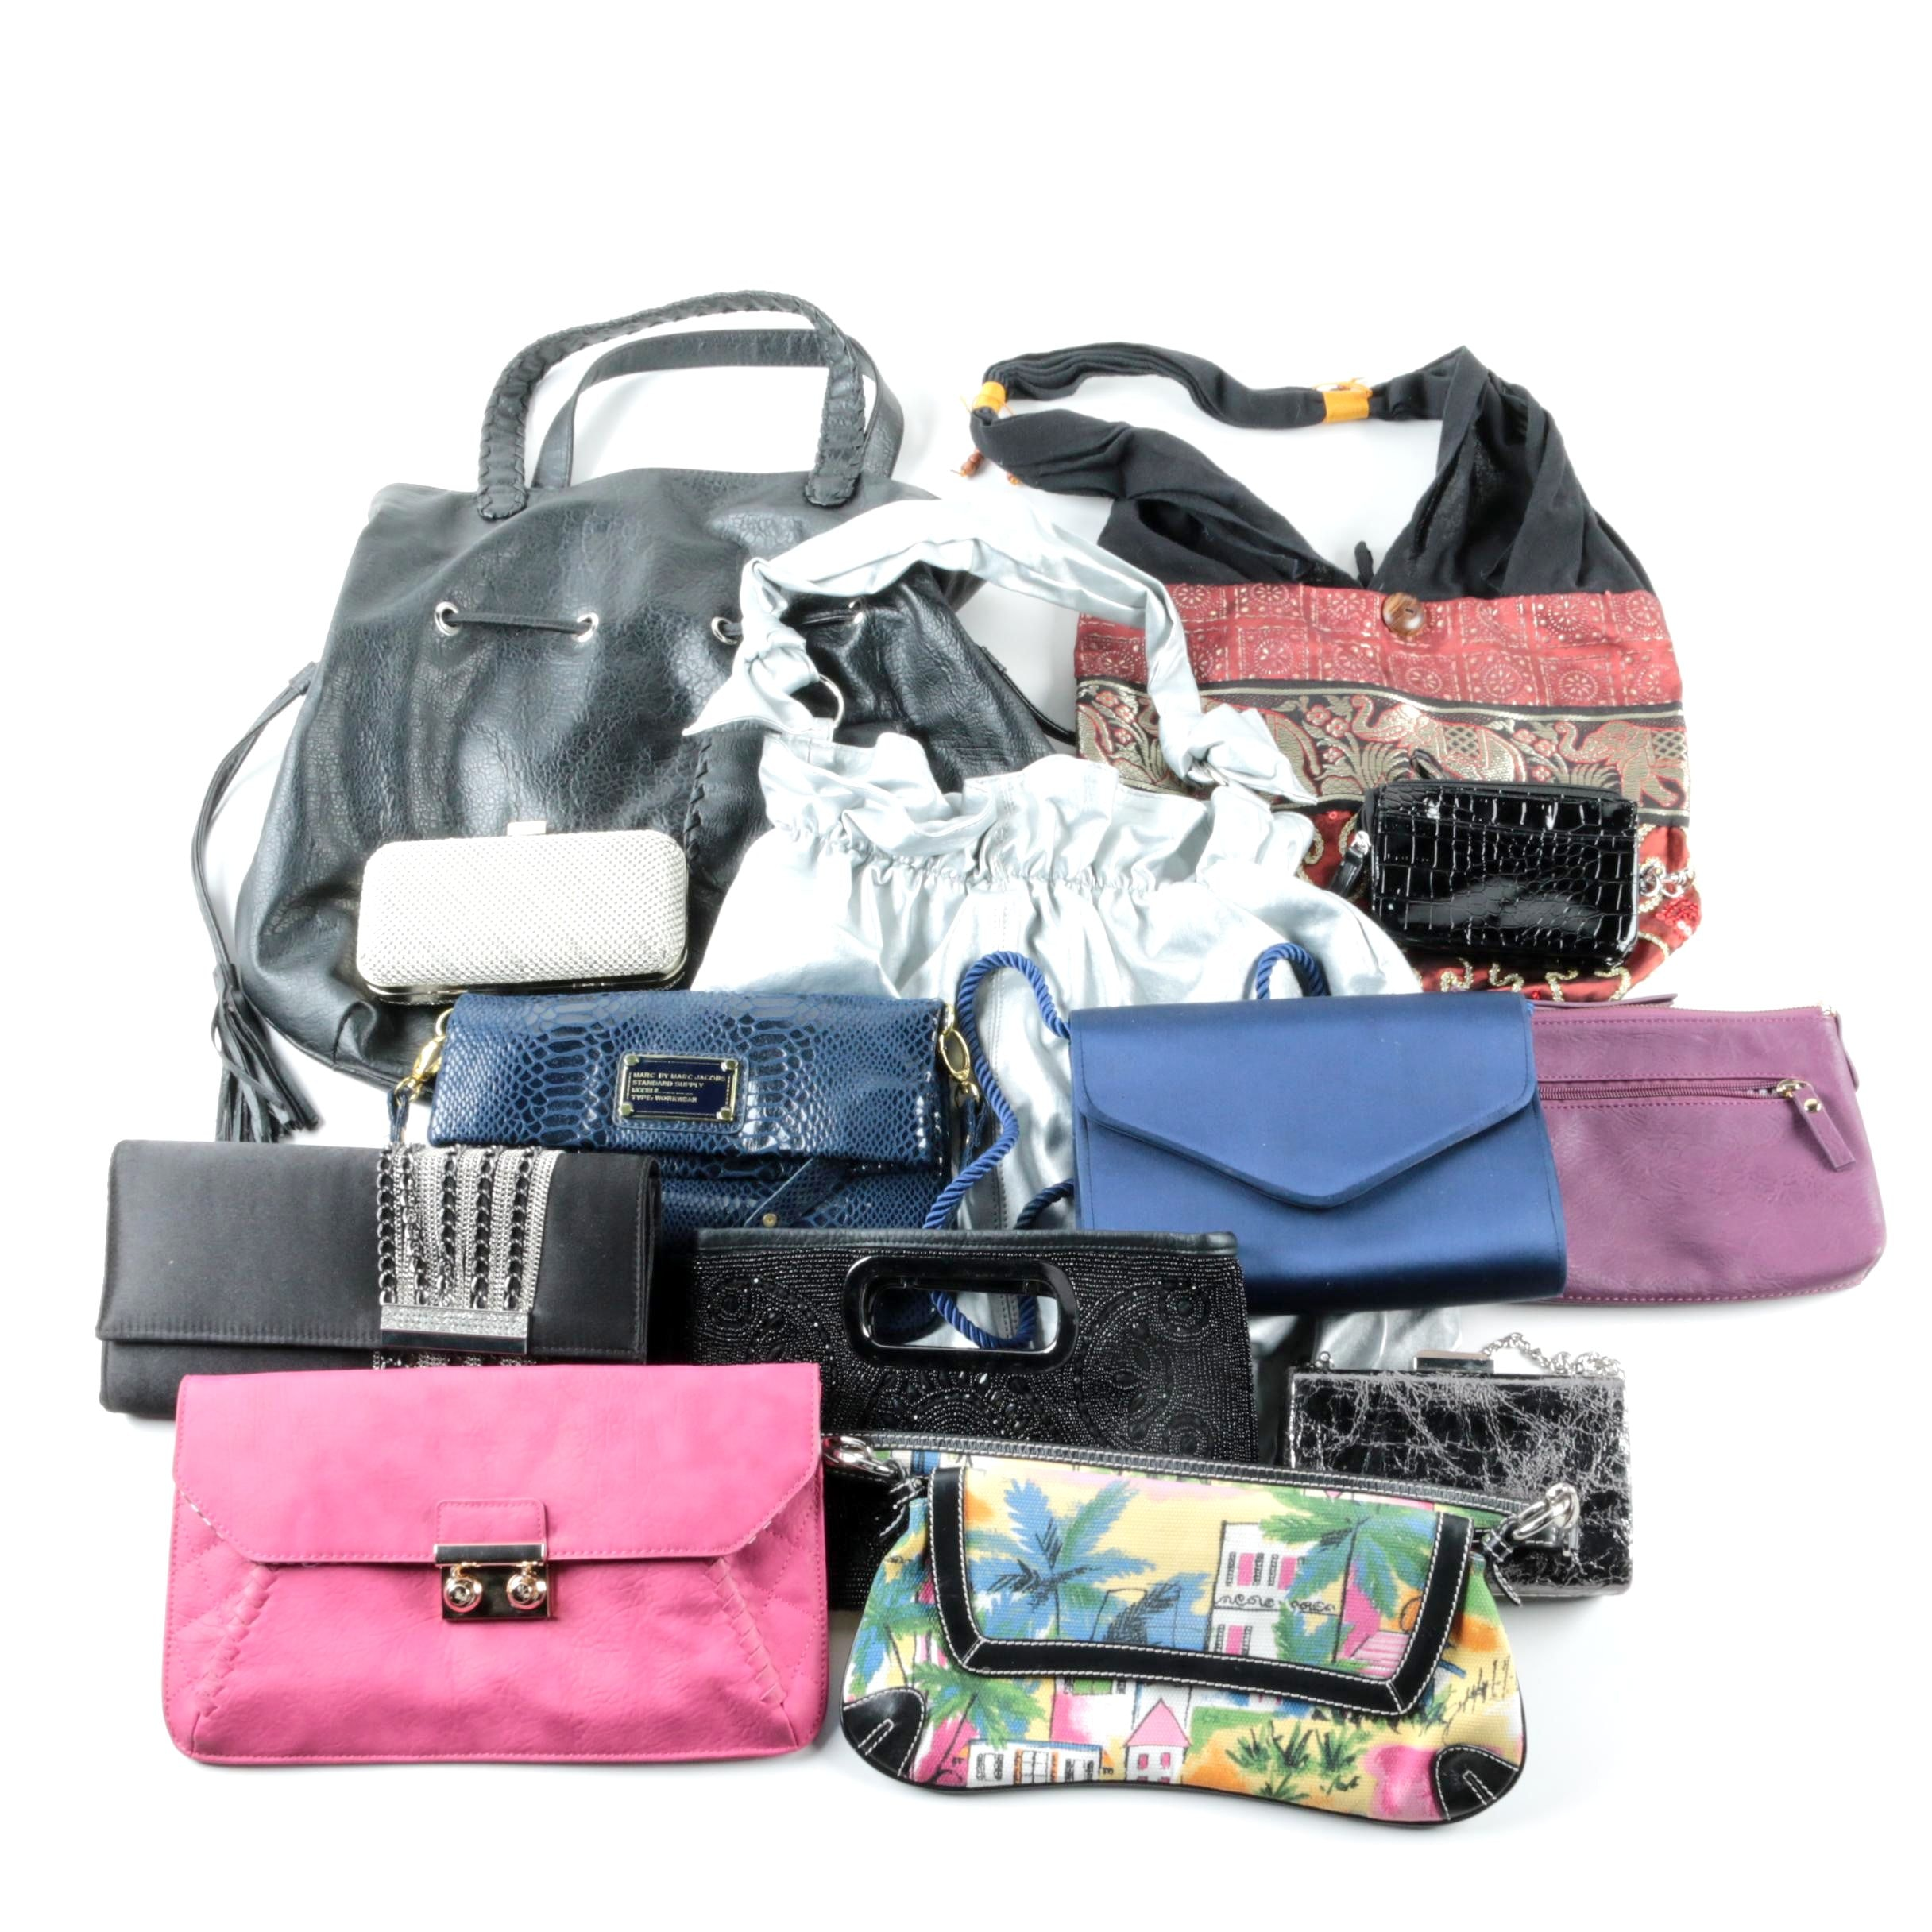 Handbags, Totes and Evening Bags Including Whiting & Davis